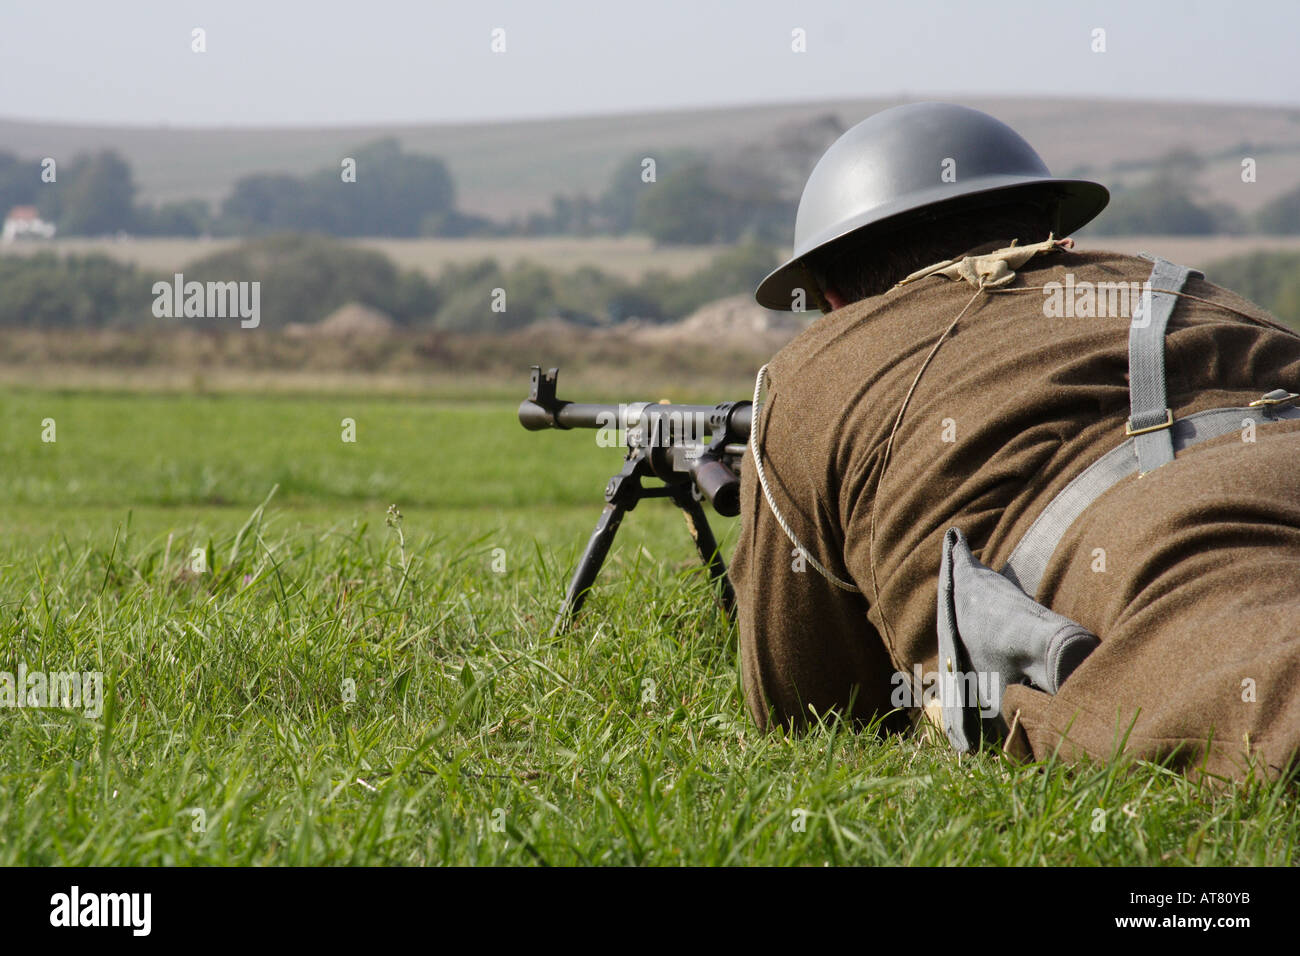 WW2 soldier armed with a machine gun lying low - Stock Image